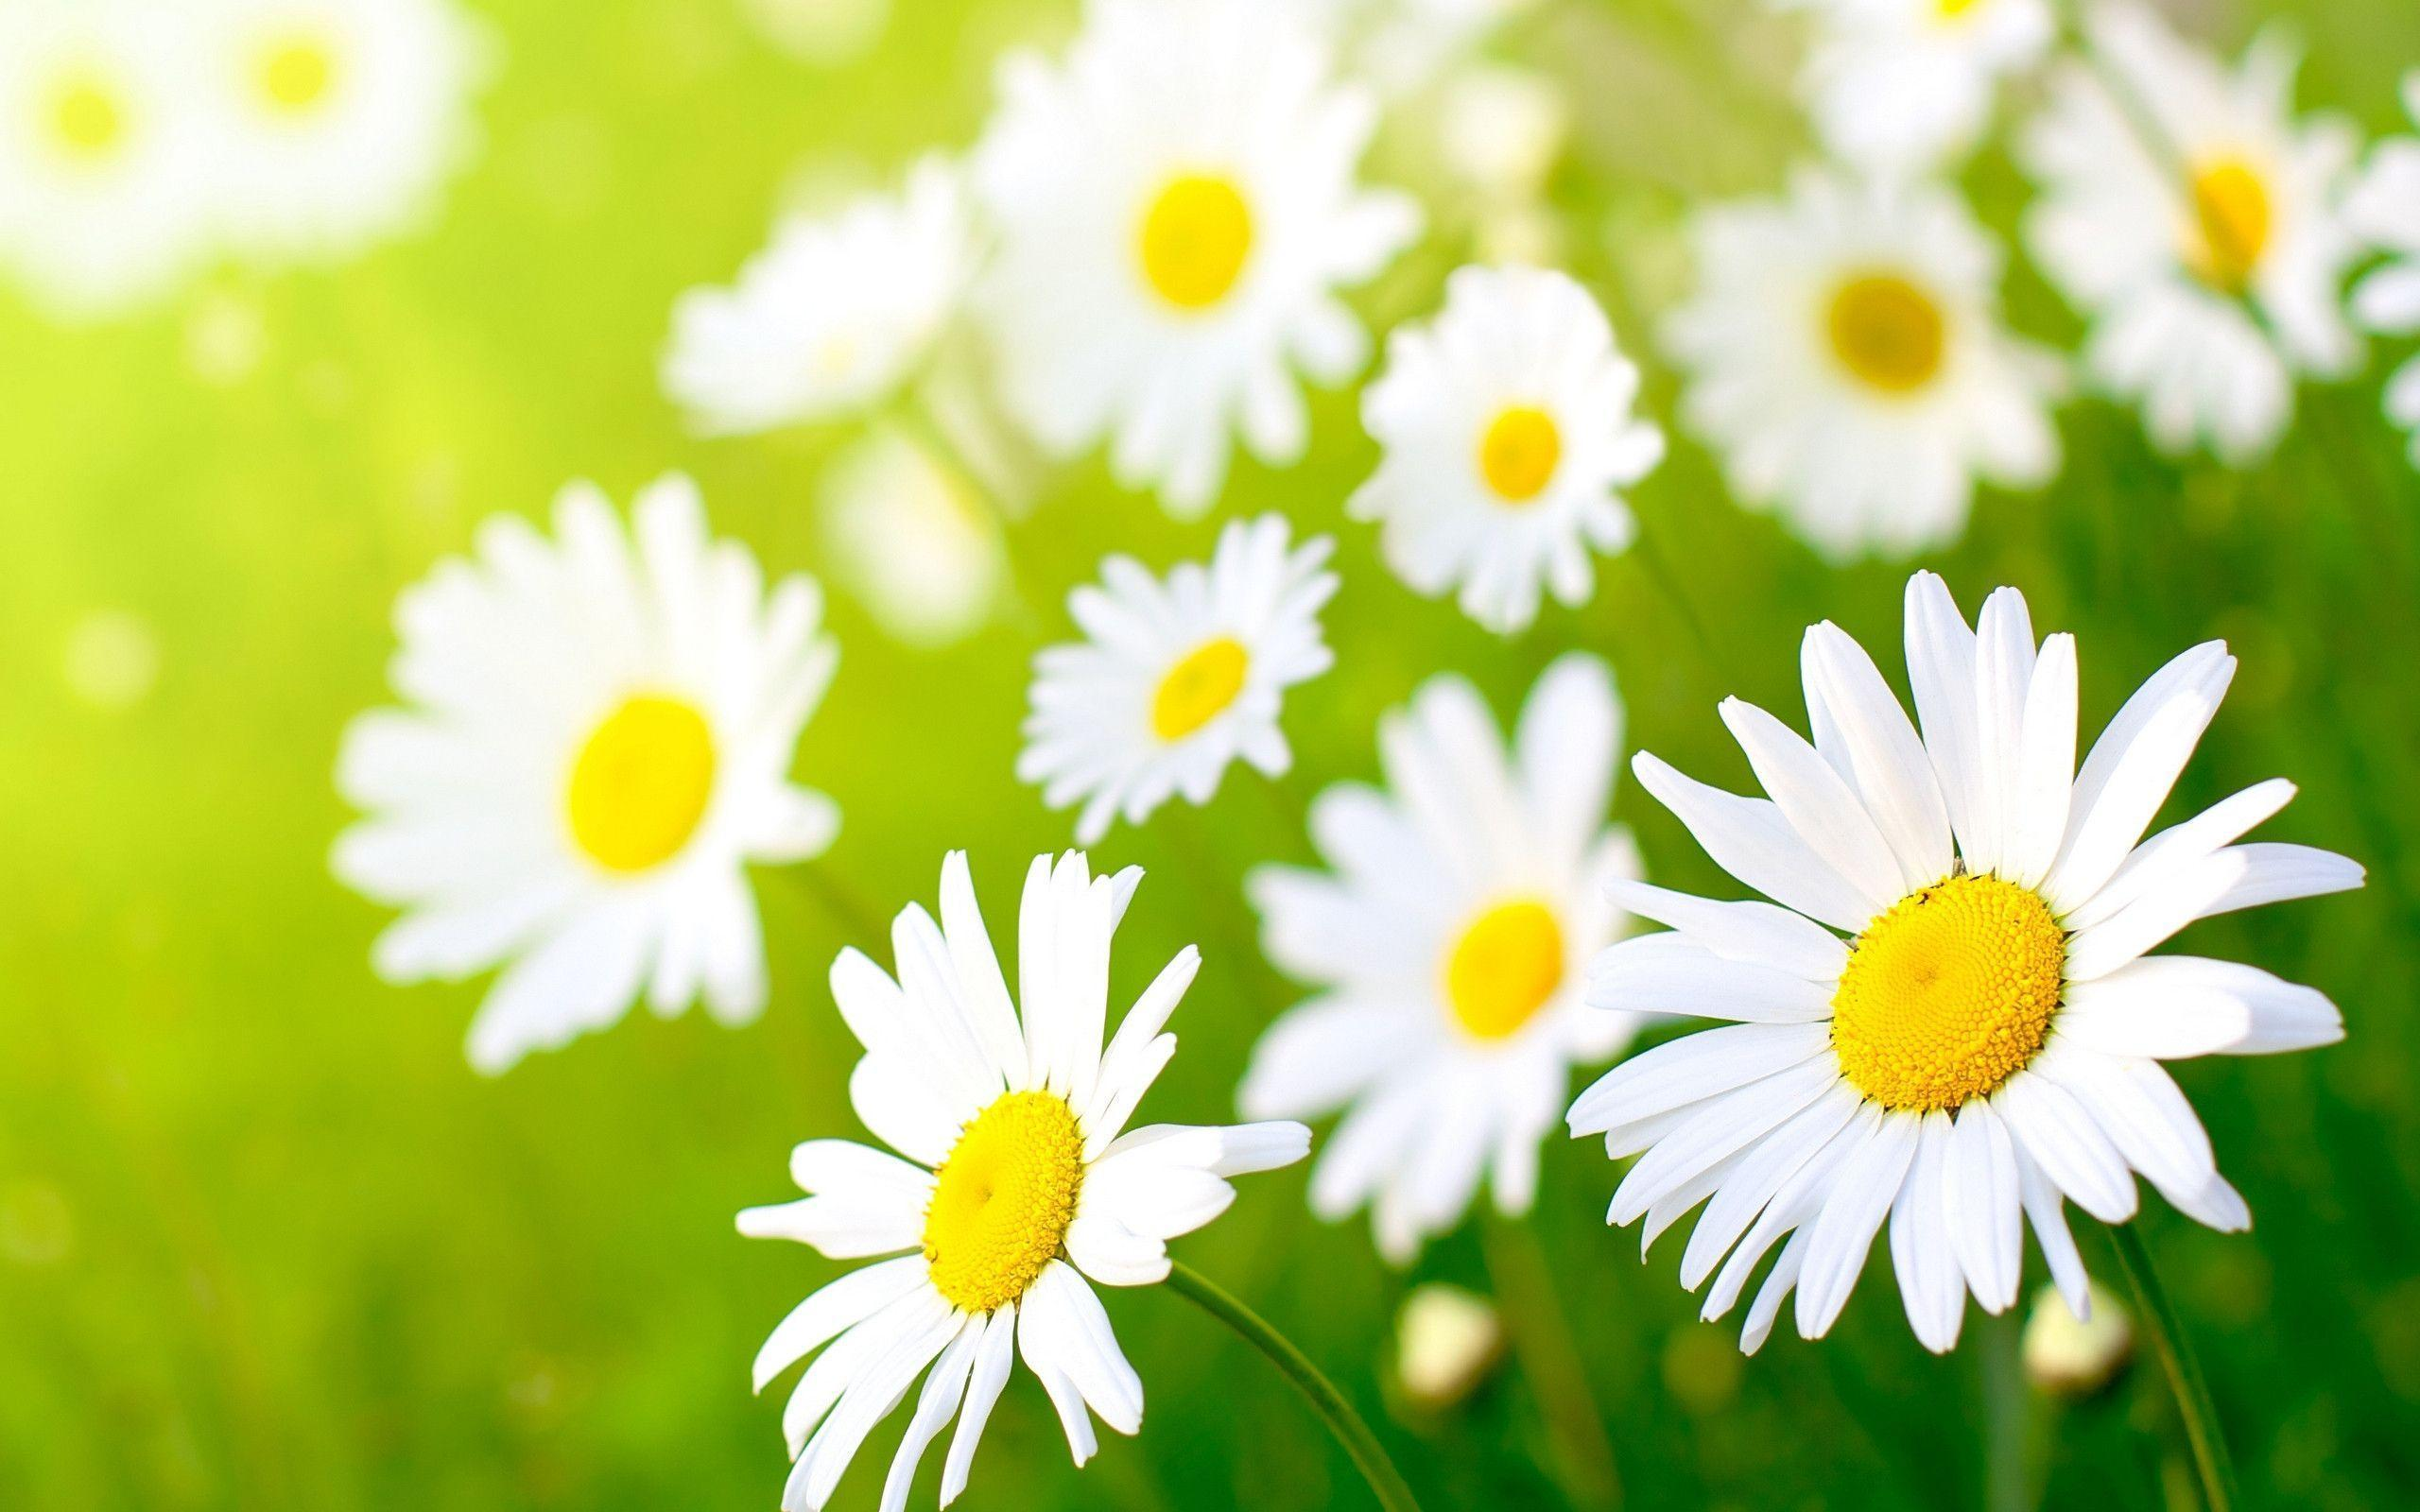 Wallpapers For > Daisy Flower Wallpapers